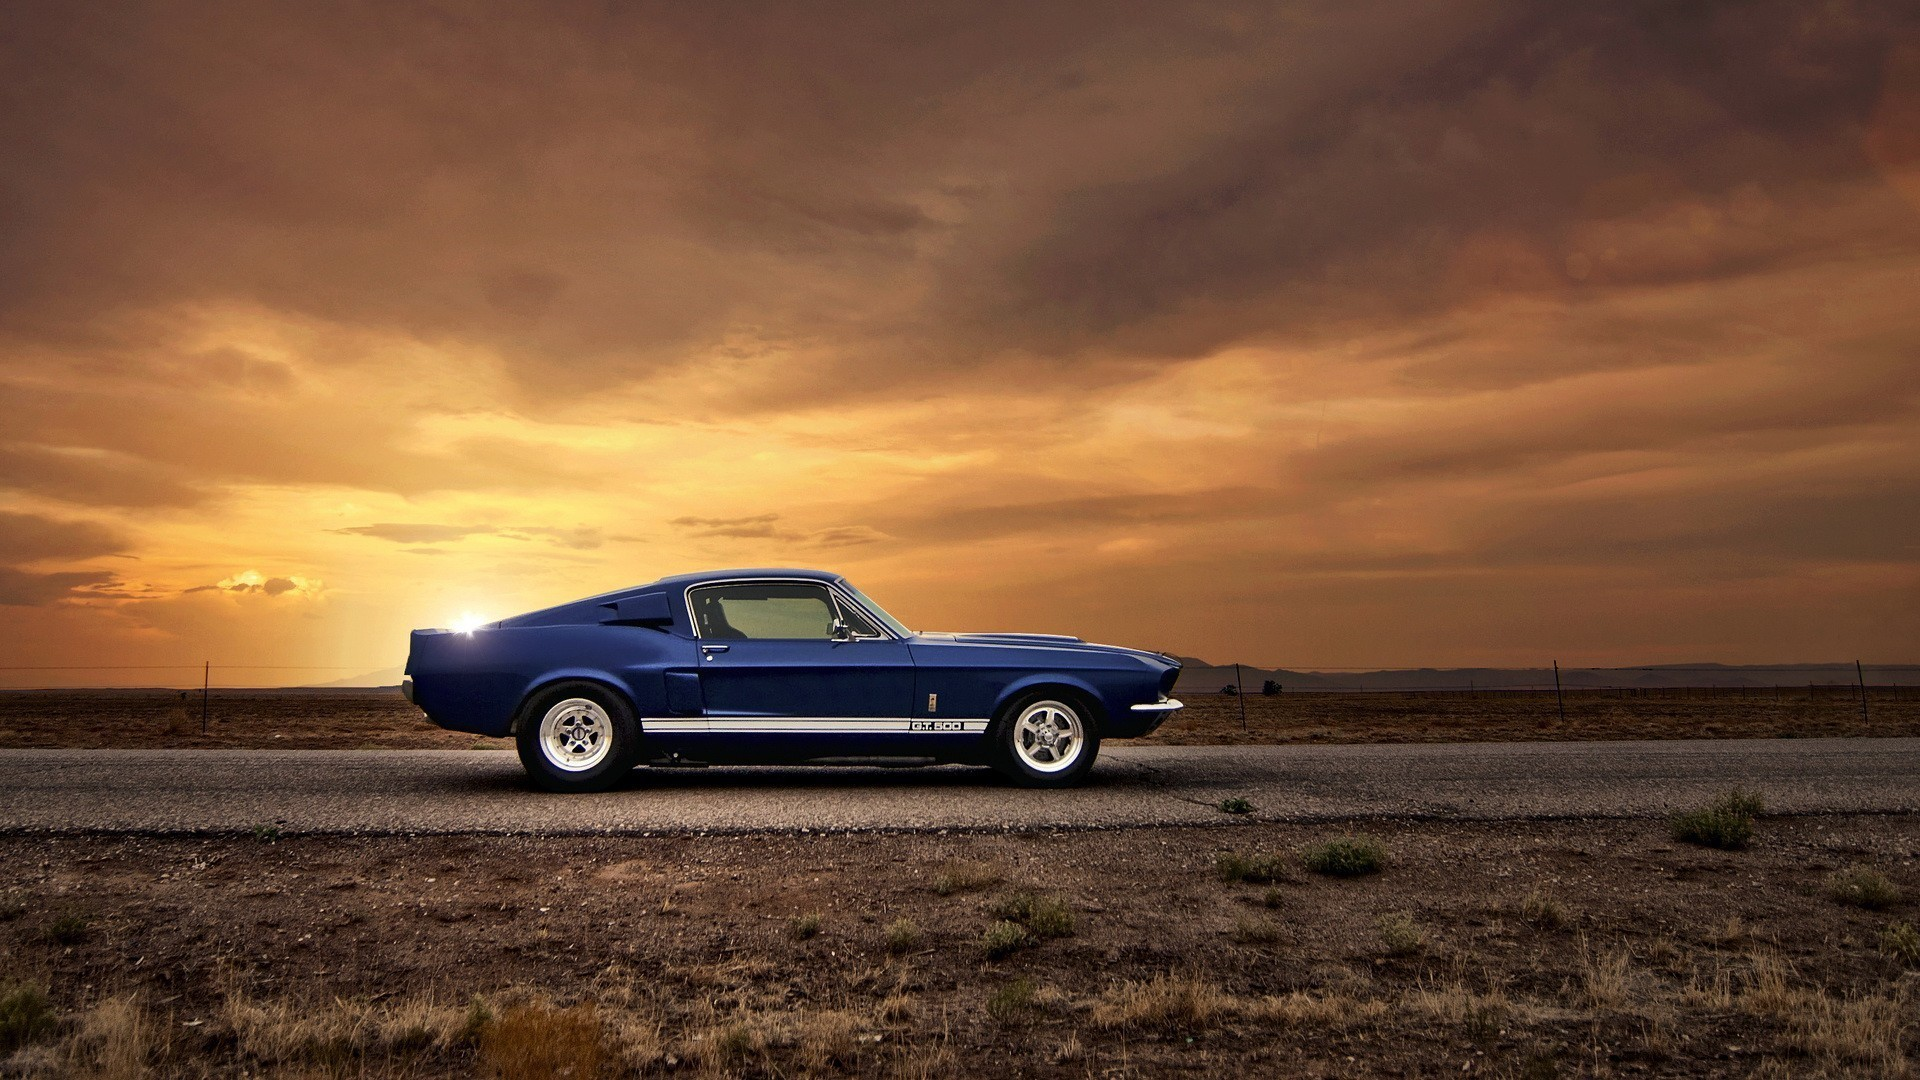 Old Classic Cars Wallpaper 67 Images